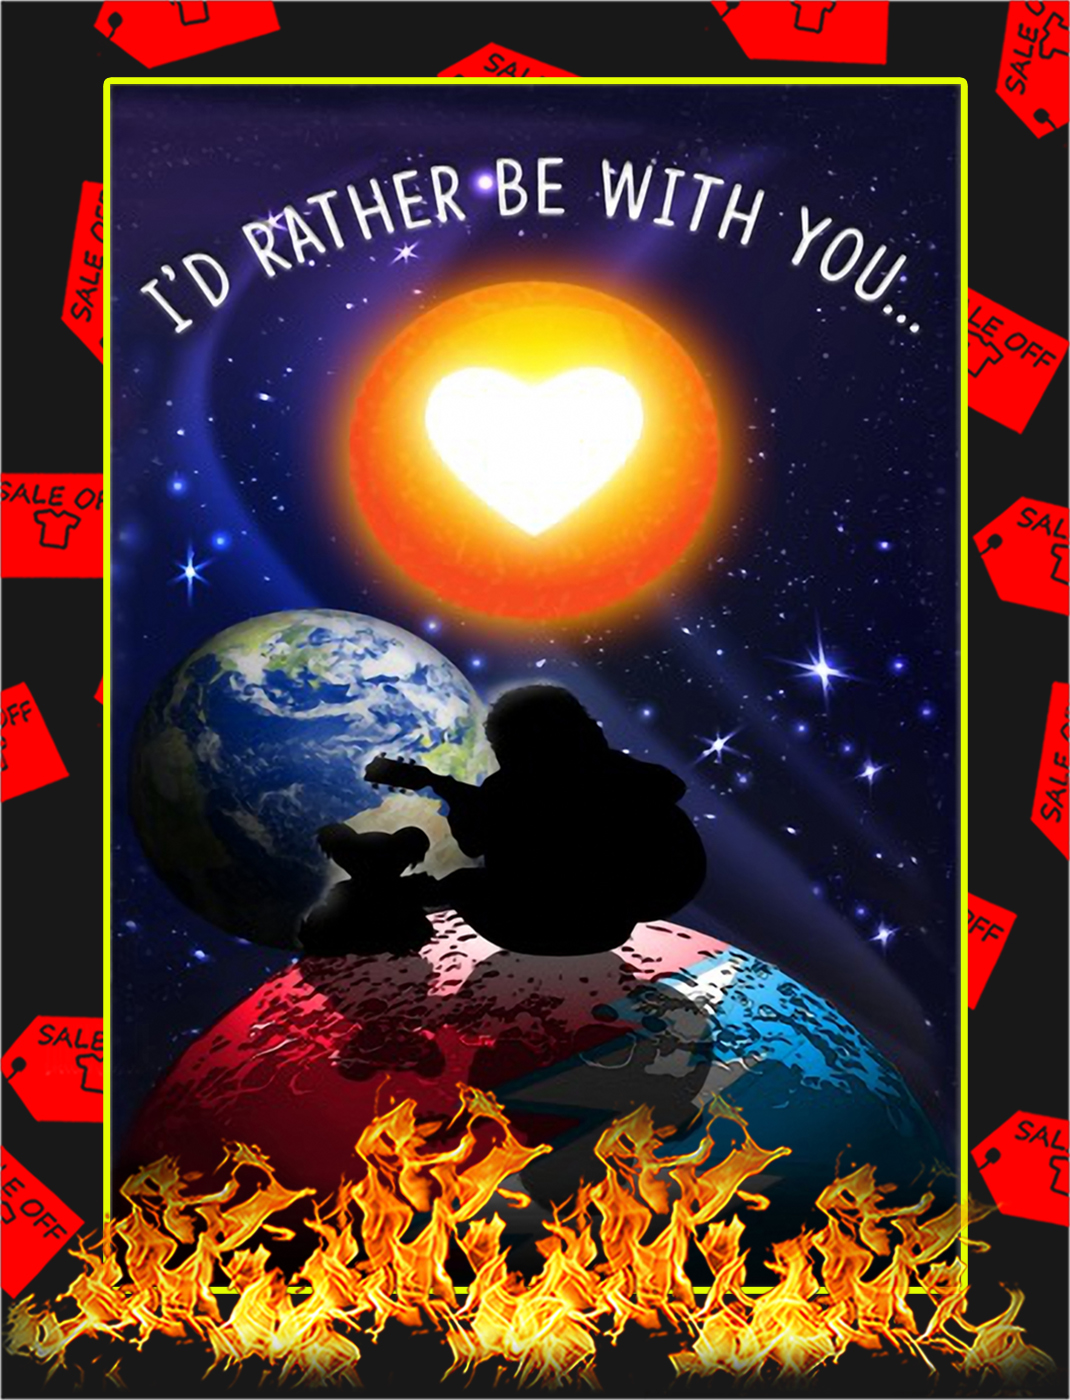 I'd rather be with you poster - A1